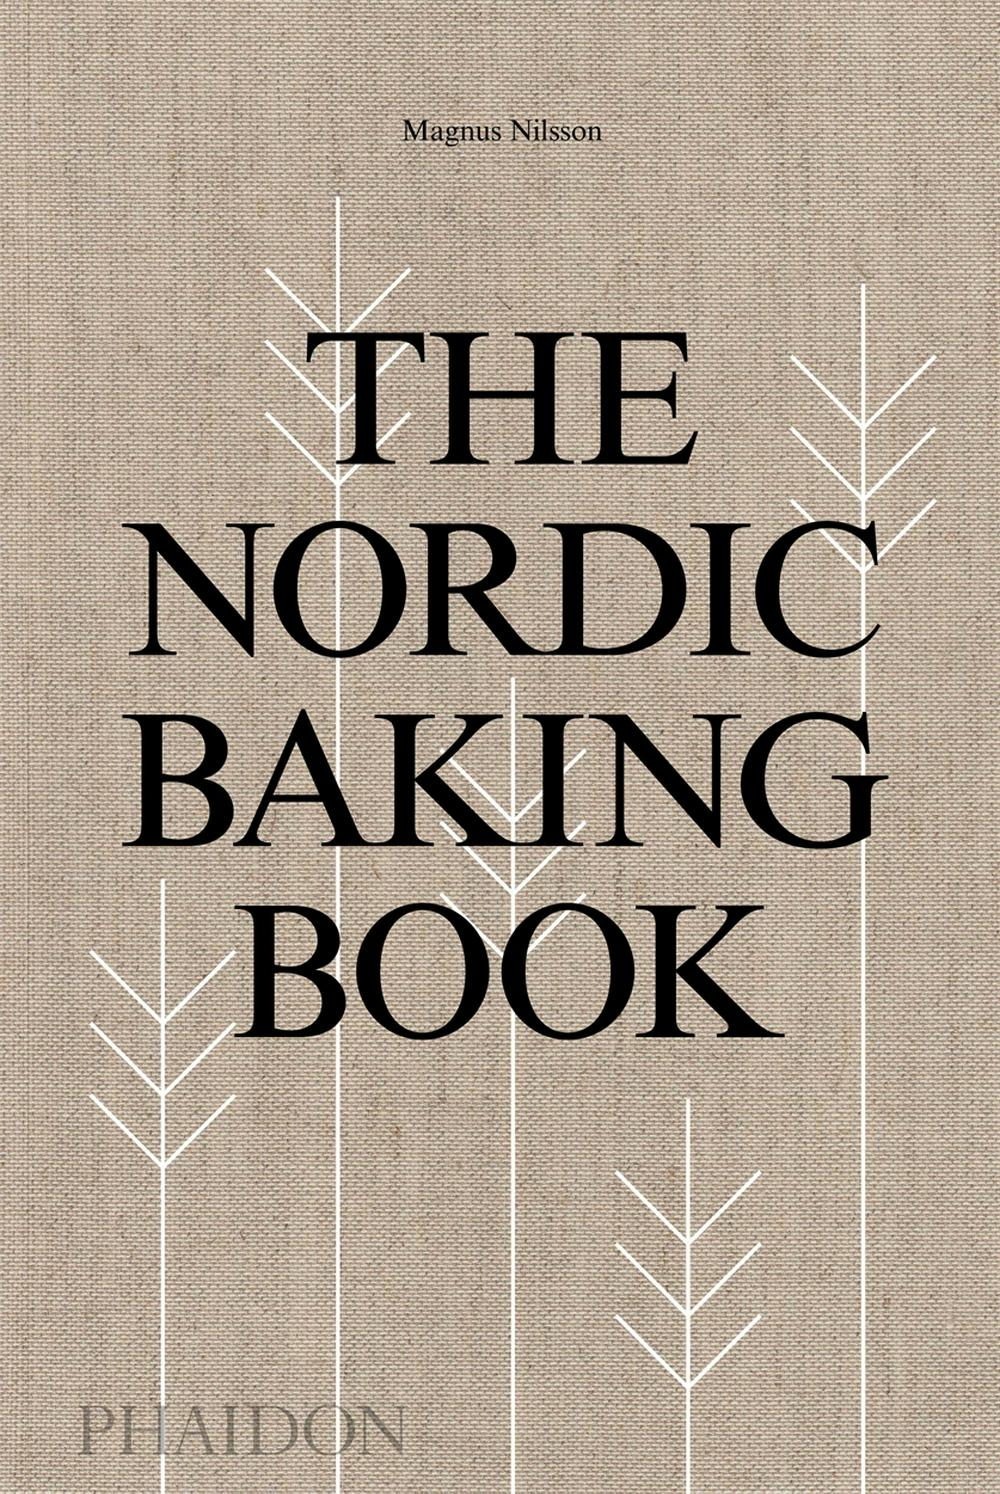 The Nordic Baking Book by Magnus Nilsson,Richard Tellstroem, ISBN: 9780714876849